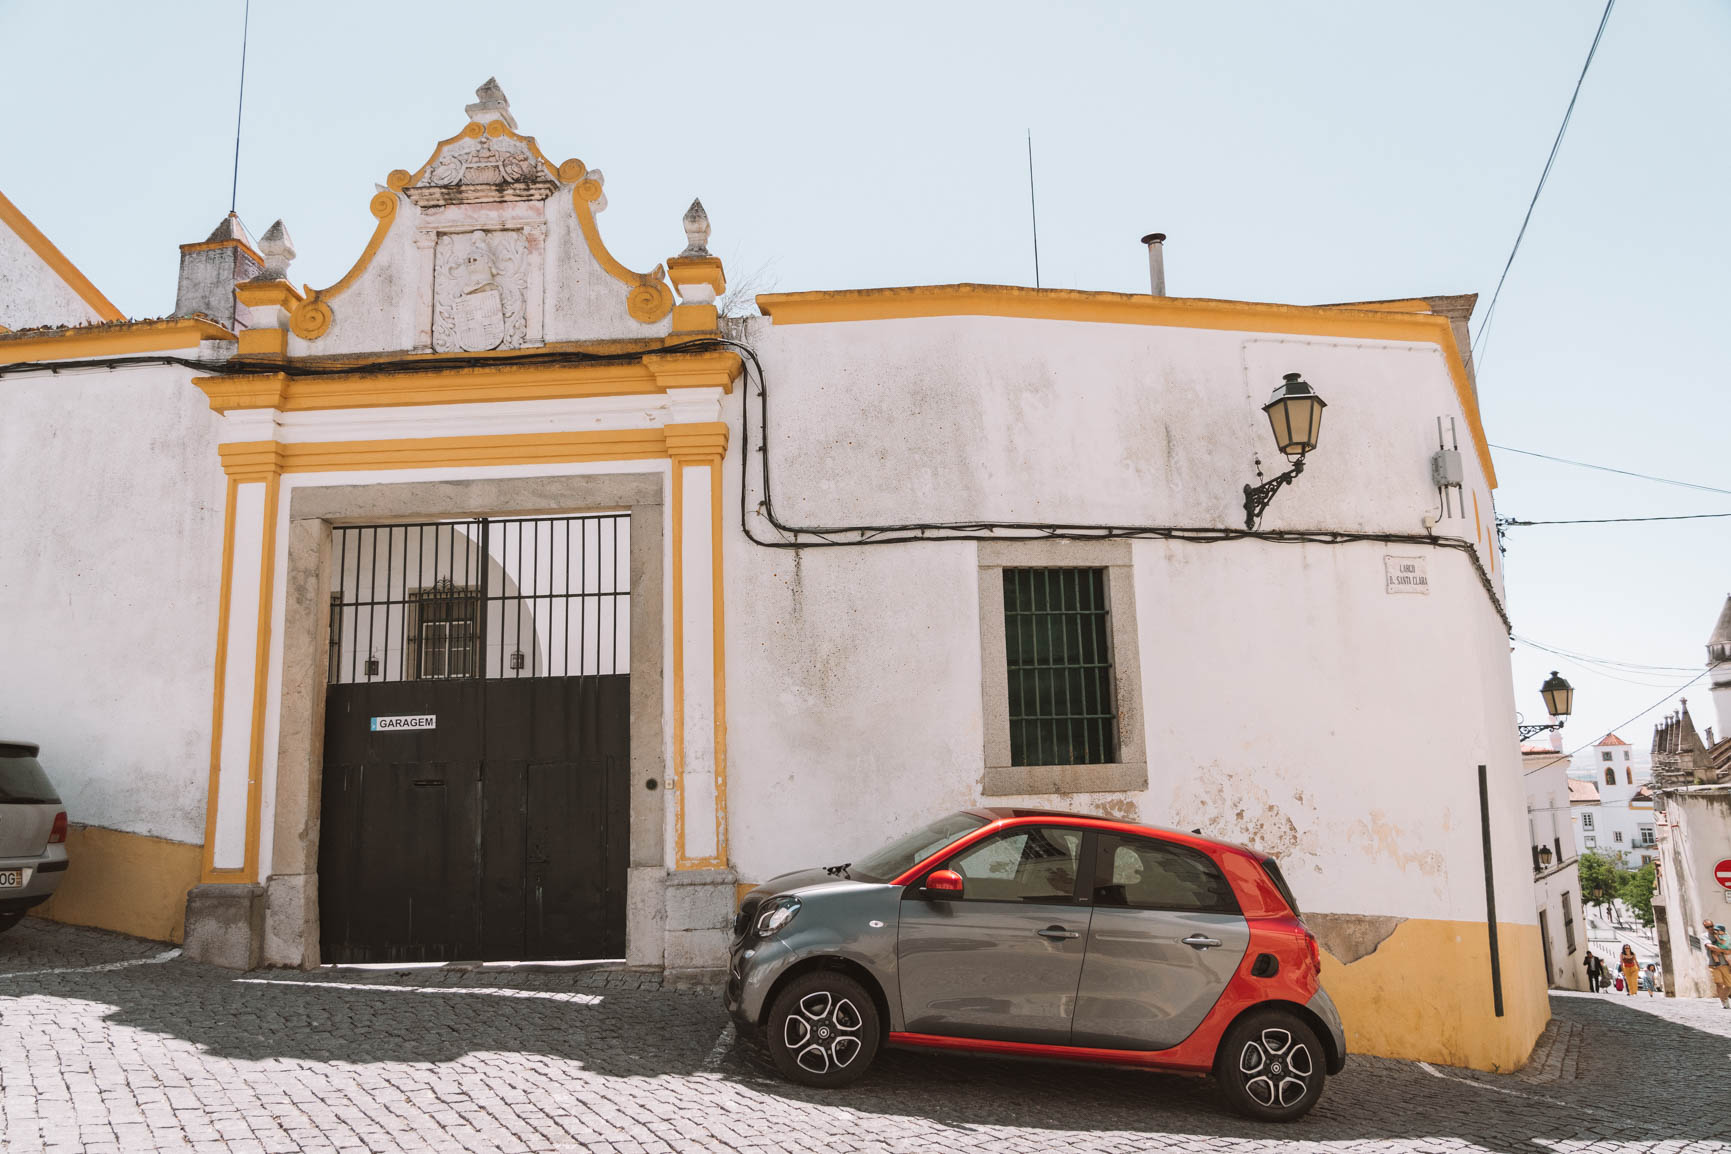 From Lisbon to Sintra by car - Driving in Portugal